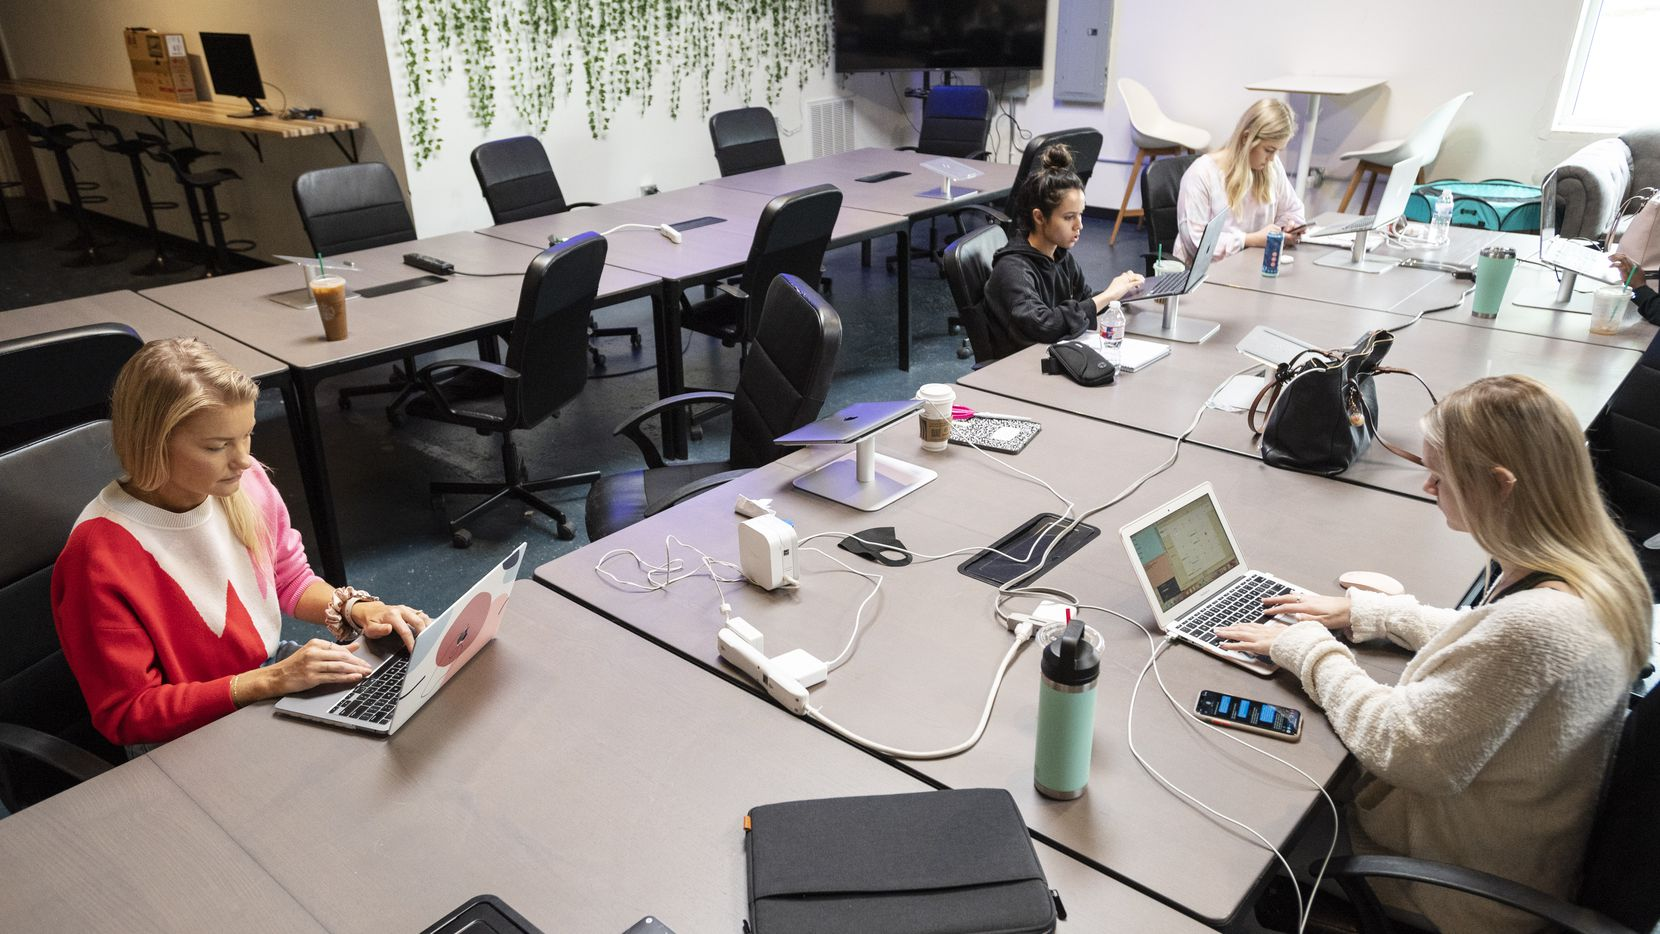 Angela Hagen (far left), director of sales, and apartment locator Ilsa Hargrove (right) work at a group table inside Smart City Apartments' headquarters in Dallas.